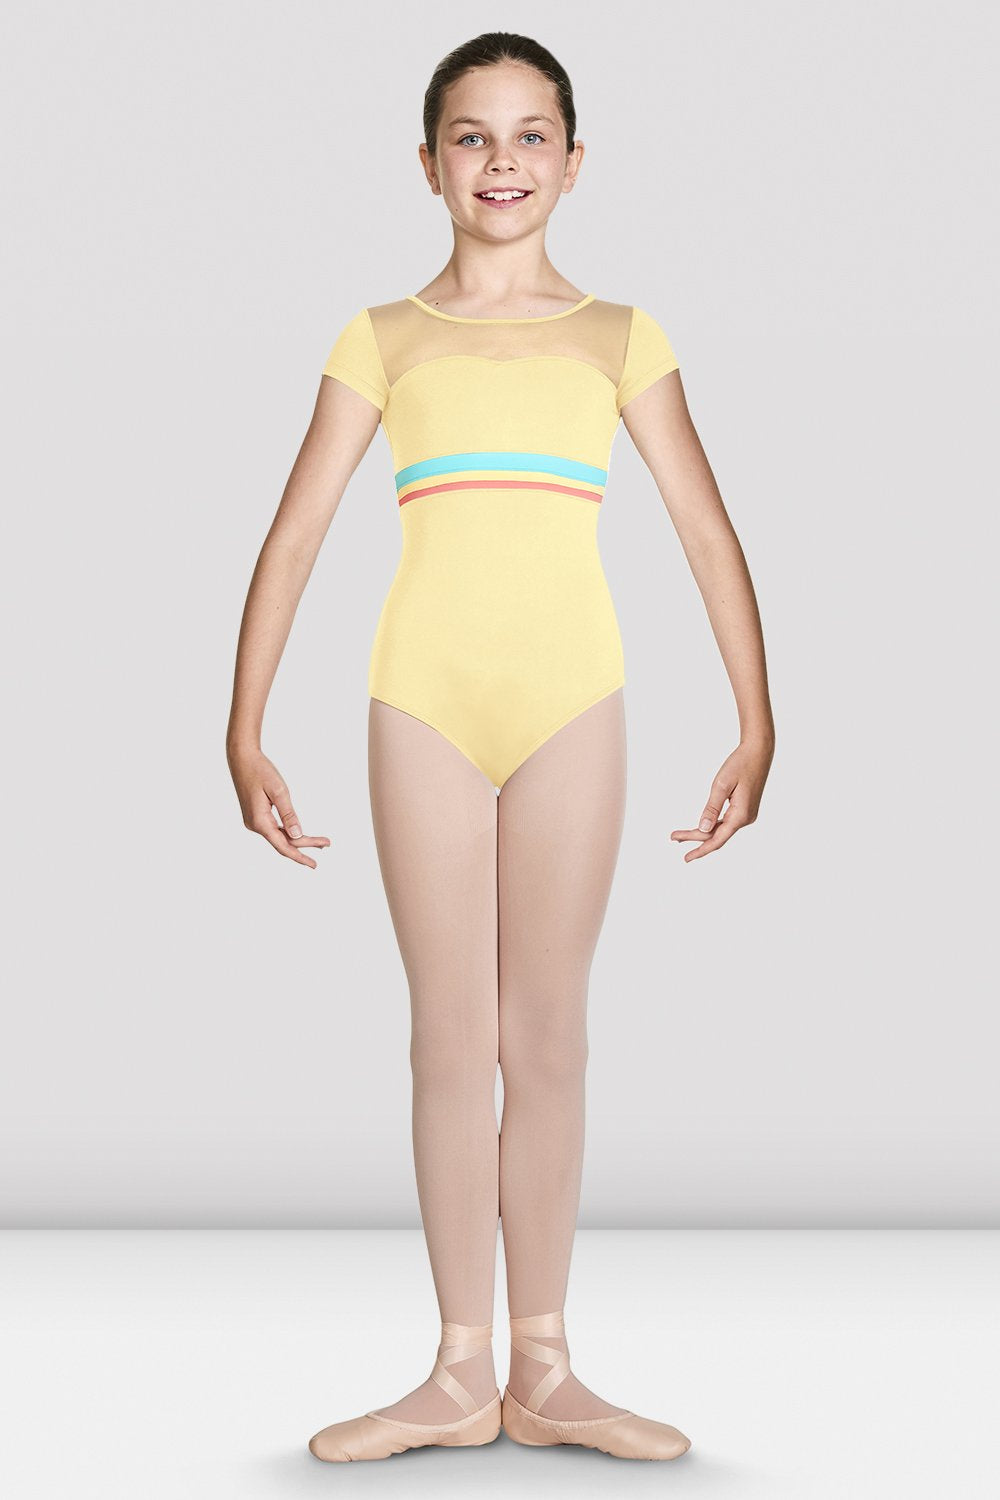 Sunshine Bloch Girls Isa Sweetheart Cap Sleeve Leotard on female model feet in first with arms in demi bra